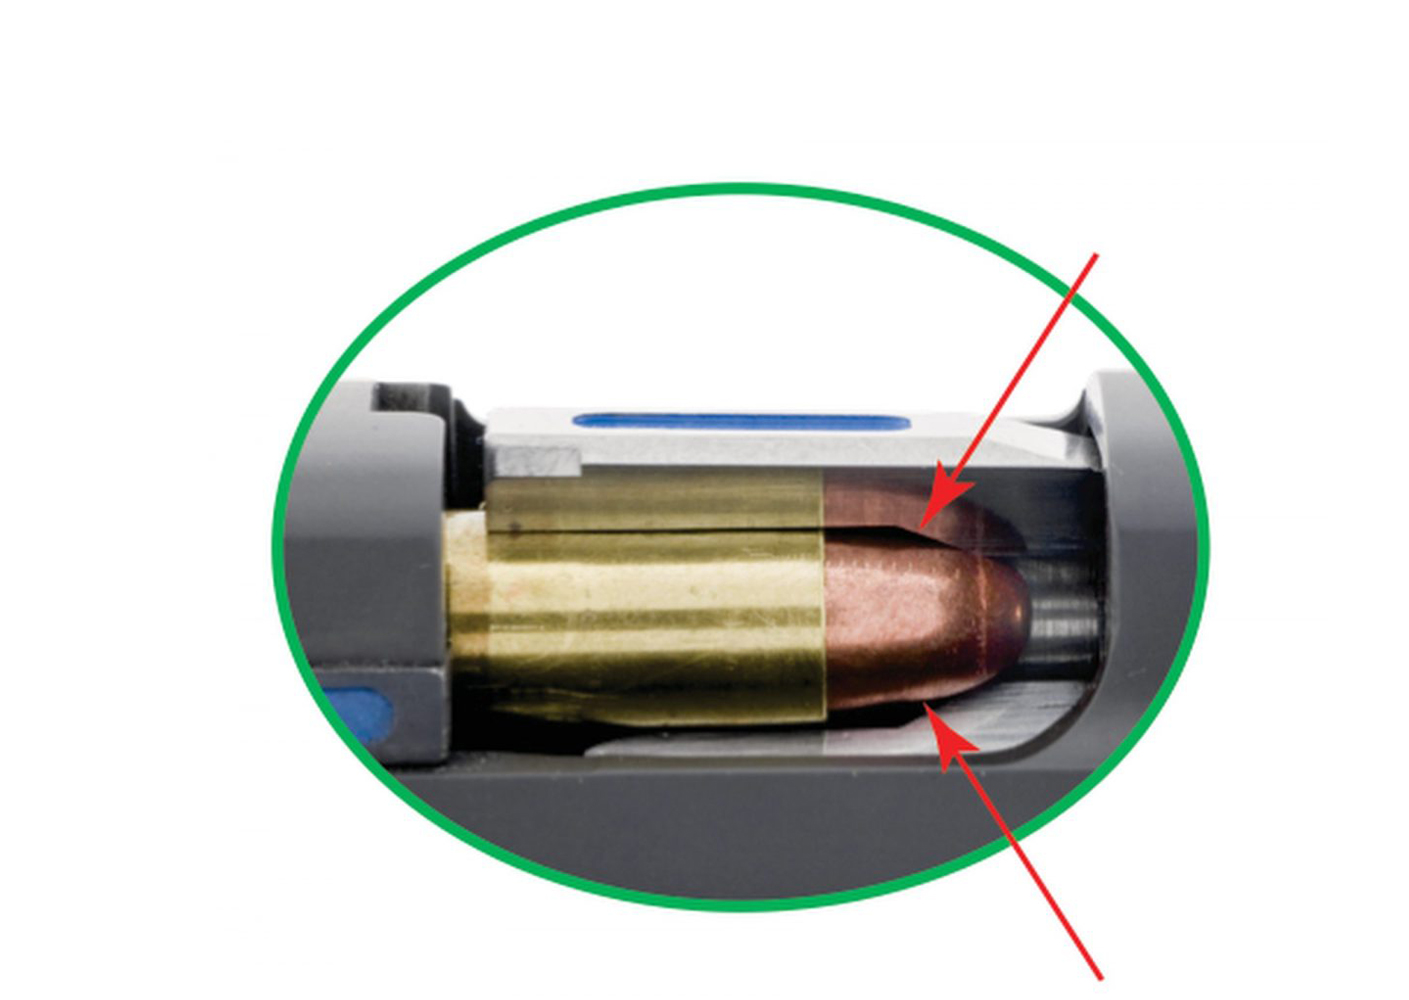 Live-round-lock-out-2-chamber